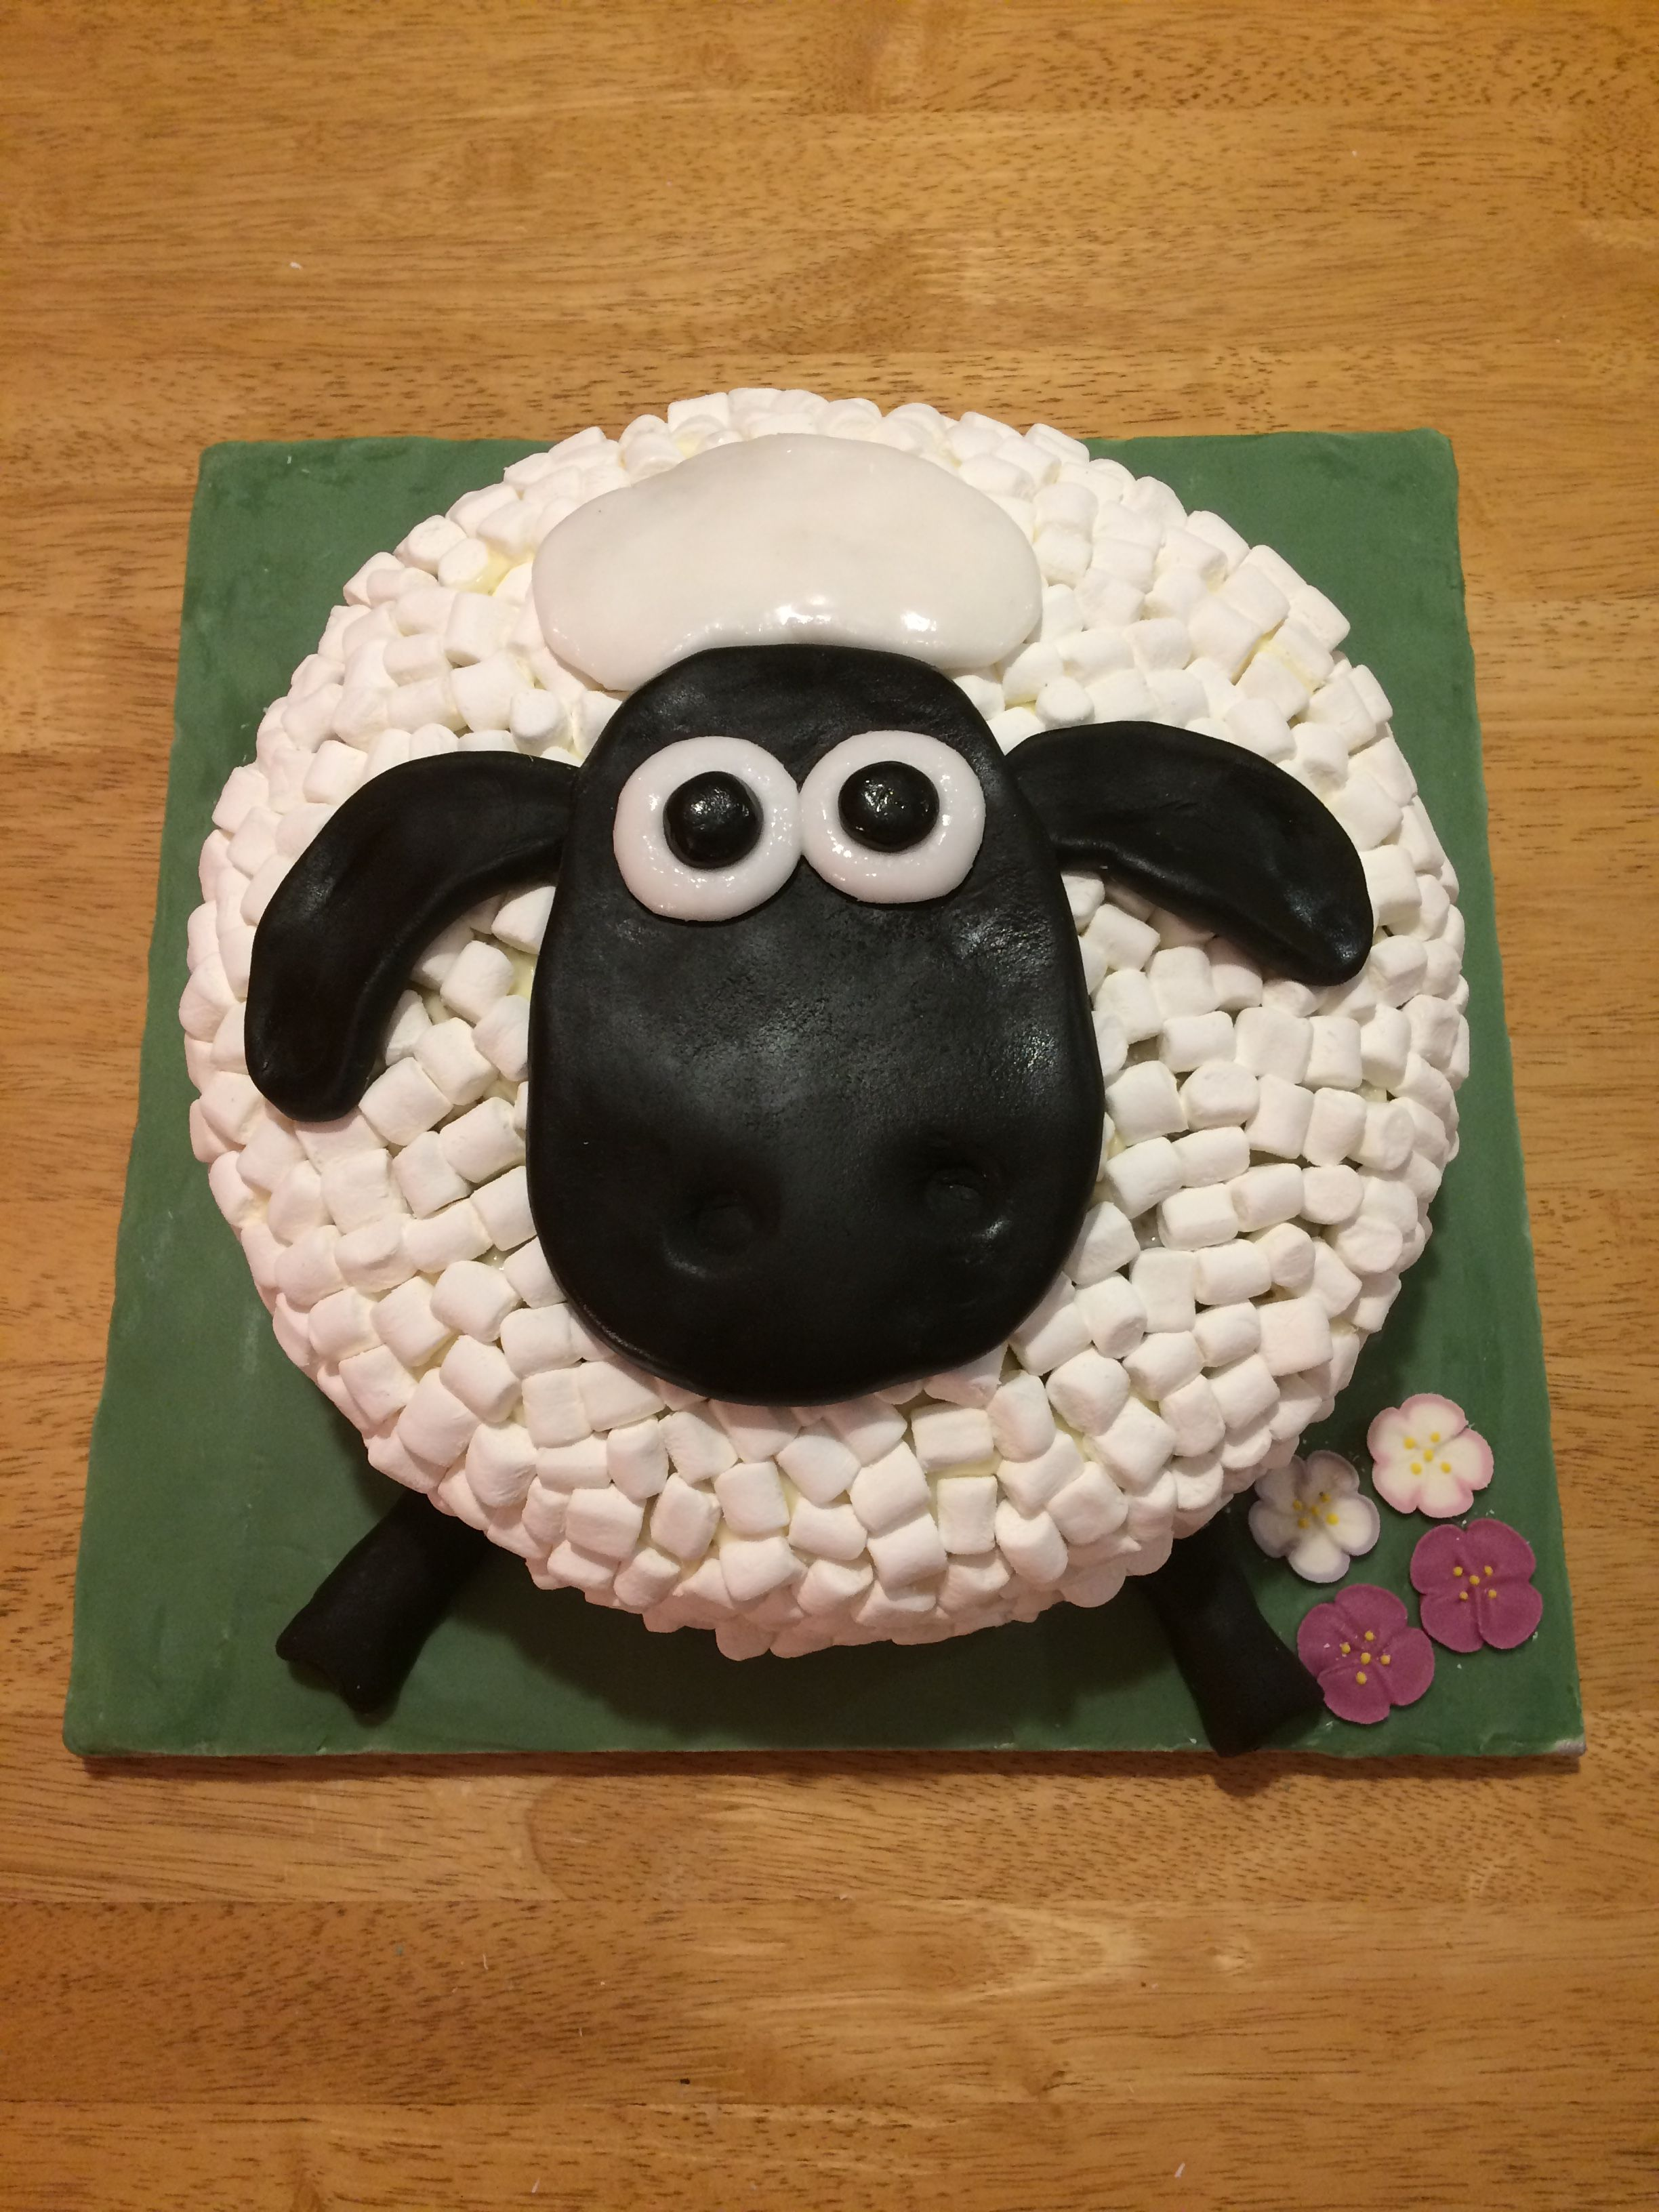 ba076a1f84bc Happy 4th Birthday Emelia! Here s your Shaun the Sheep piñata cake you  wanted!!!